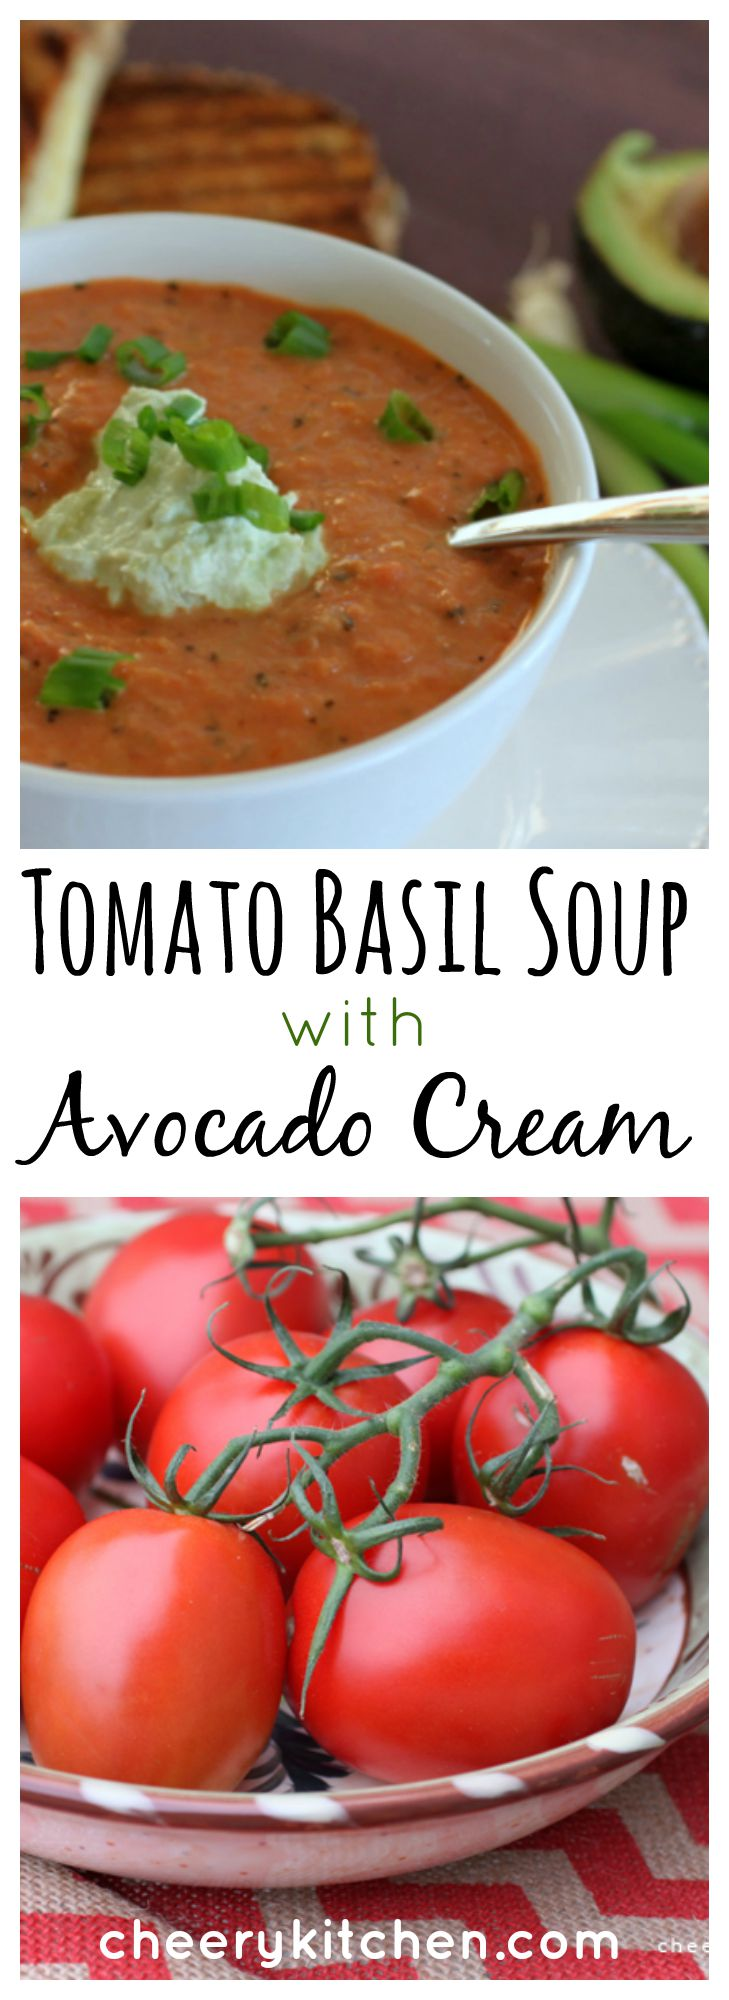 Tomato Basil Soup with Avocado Cream